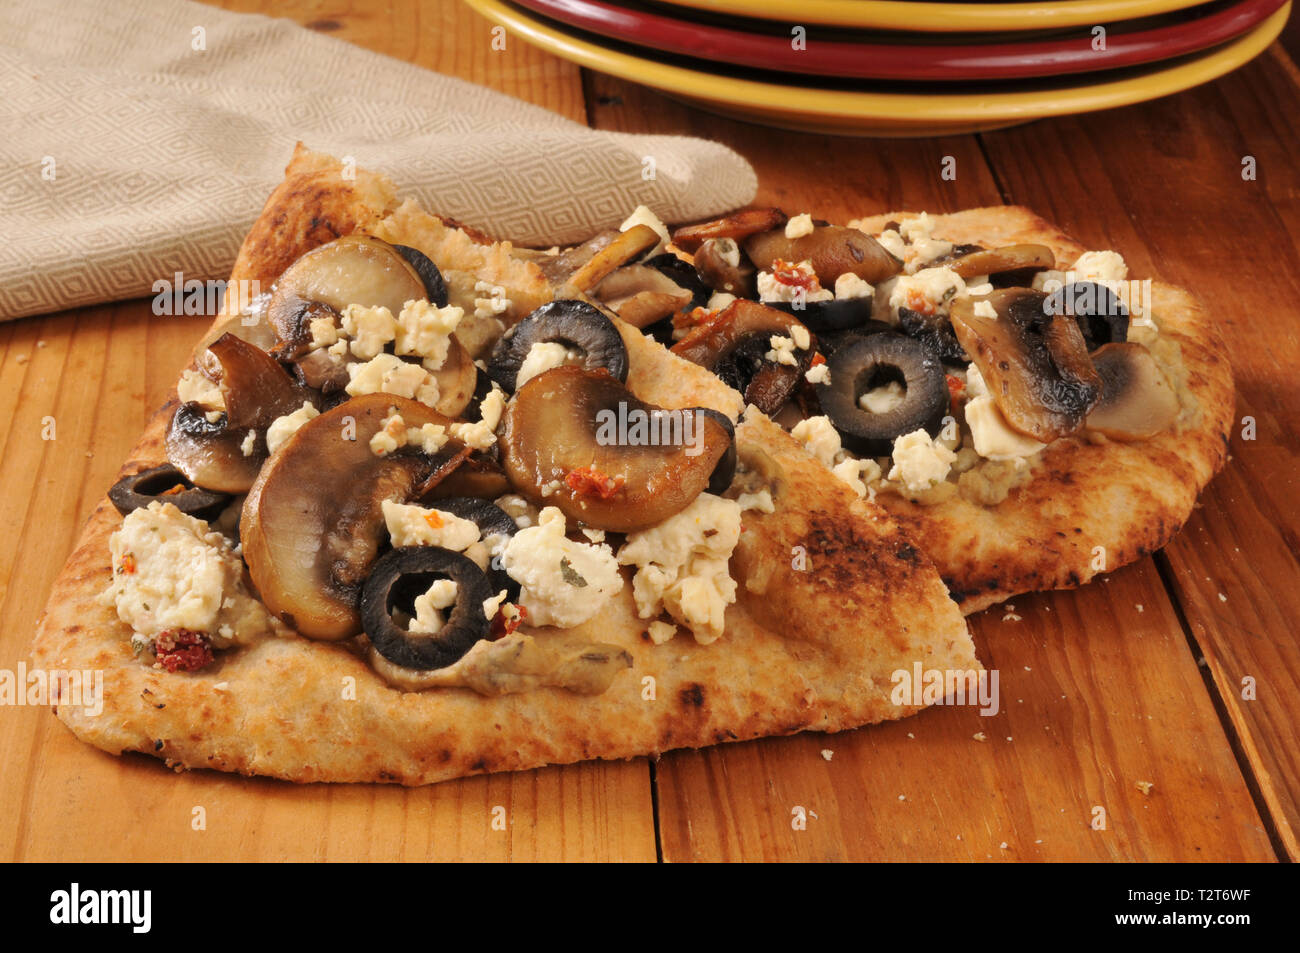 Naan bread topped with black olives, sauteed mushrooms, feta cheese and hummus - Stock Image